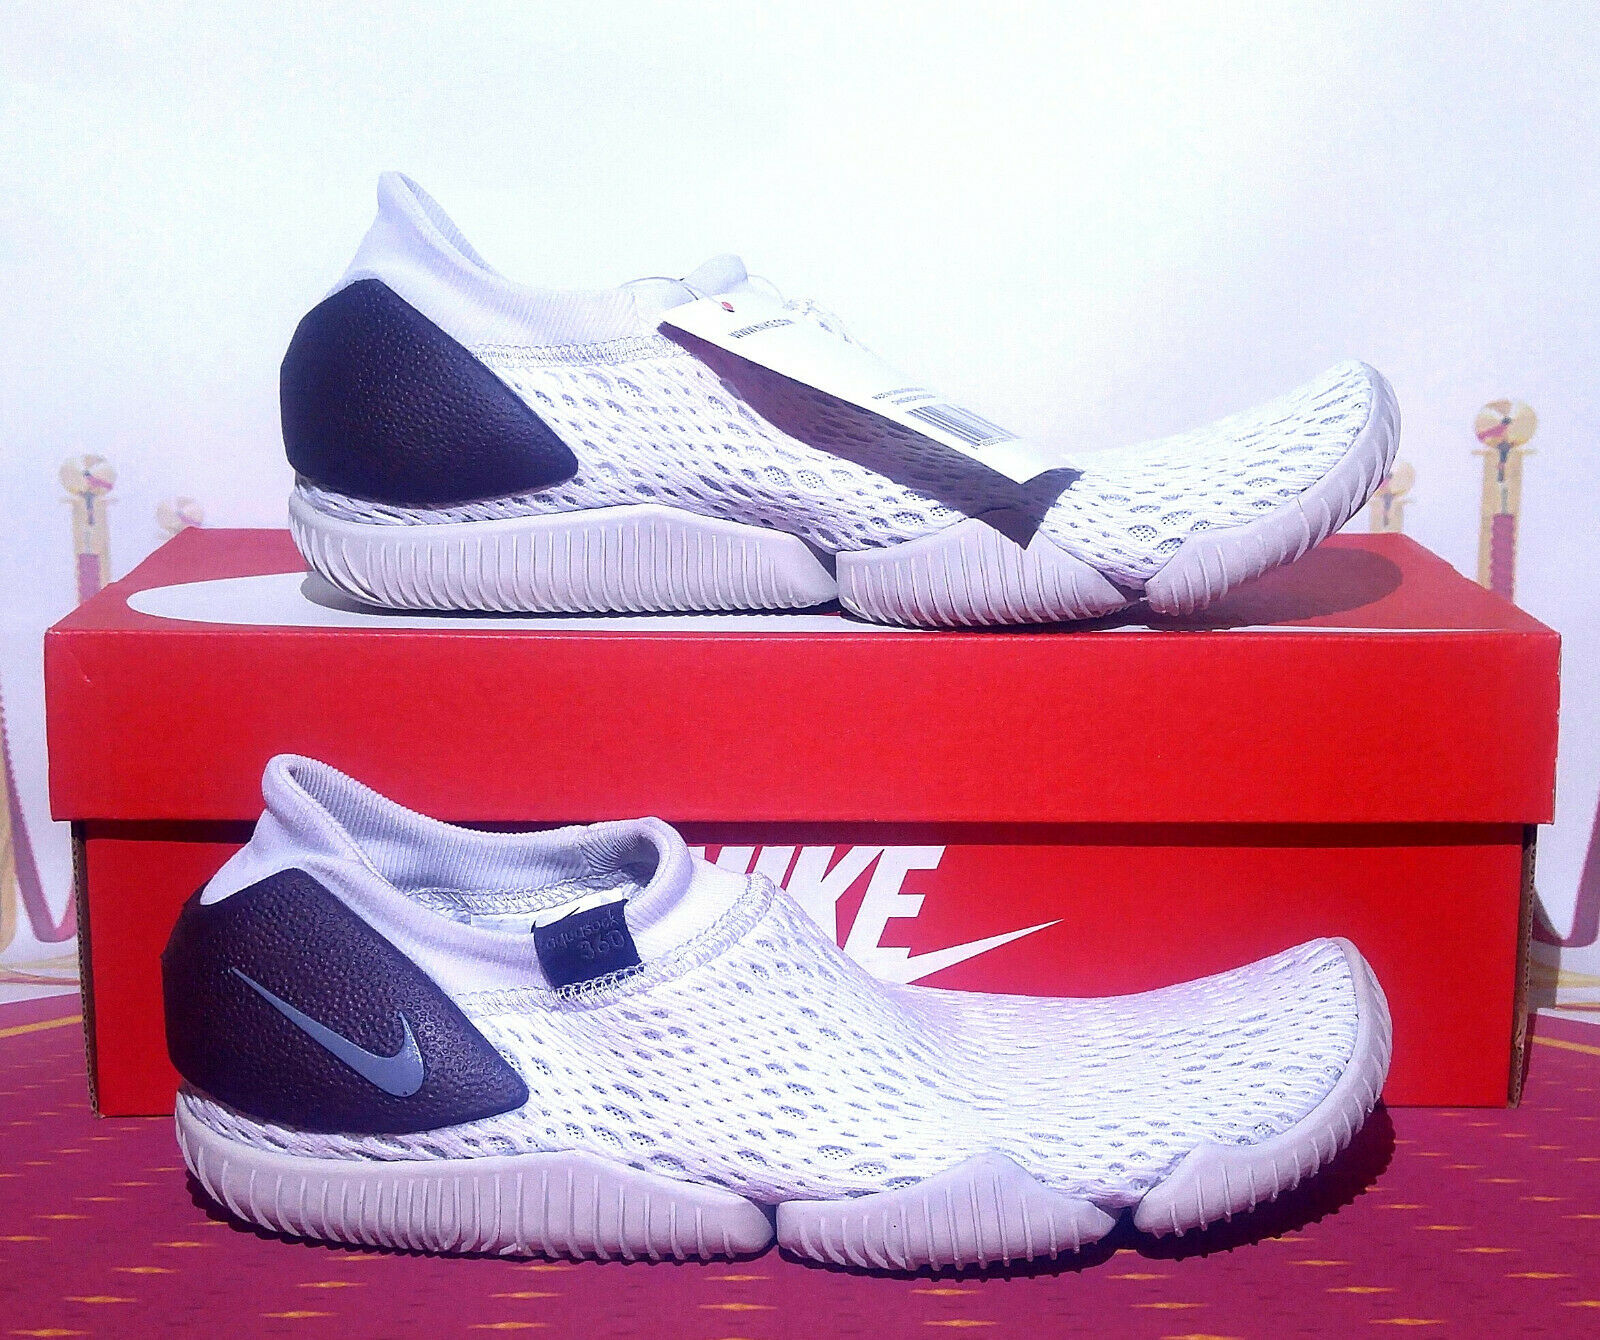 d4492883ca1 AQUA SOCK 360 885105 004 Men's Women's Size vast grey NEW 7-8-9-10-11-12  NIKE nczajt2110-Athletic Shoes